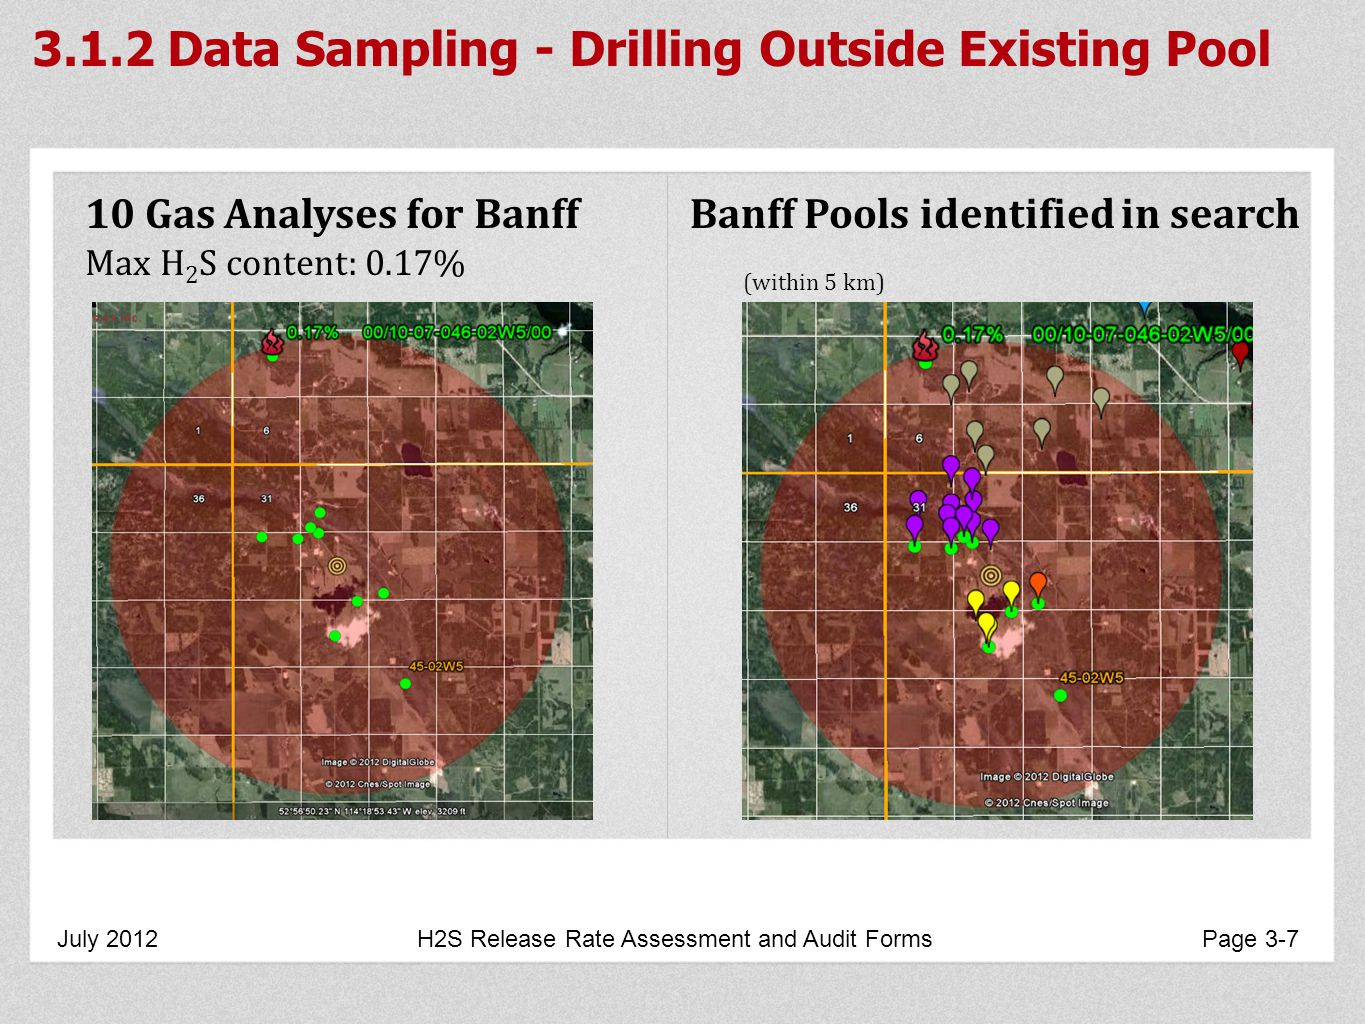 Banff Pools identified in search (within 5 km) Data Sampling - Drilling Outside Existing Pool 10 Gas Analyses for Banff Max H 2 S content: 0.17% July 2012 H2S Release Rate Assessment and Audit Forms Page 3-7